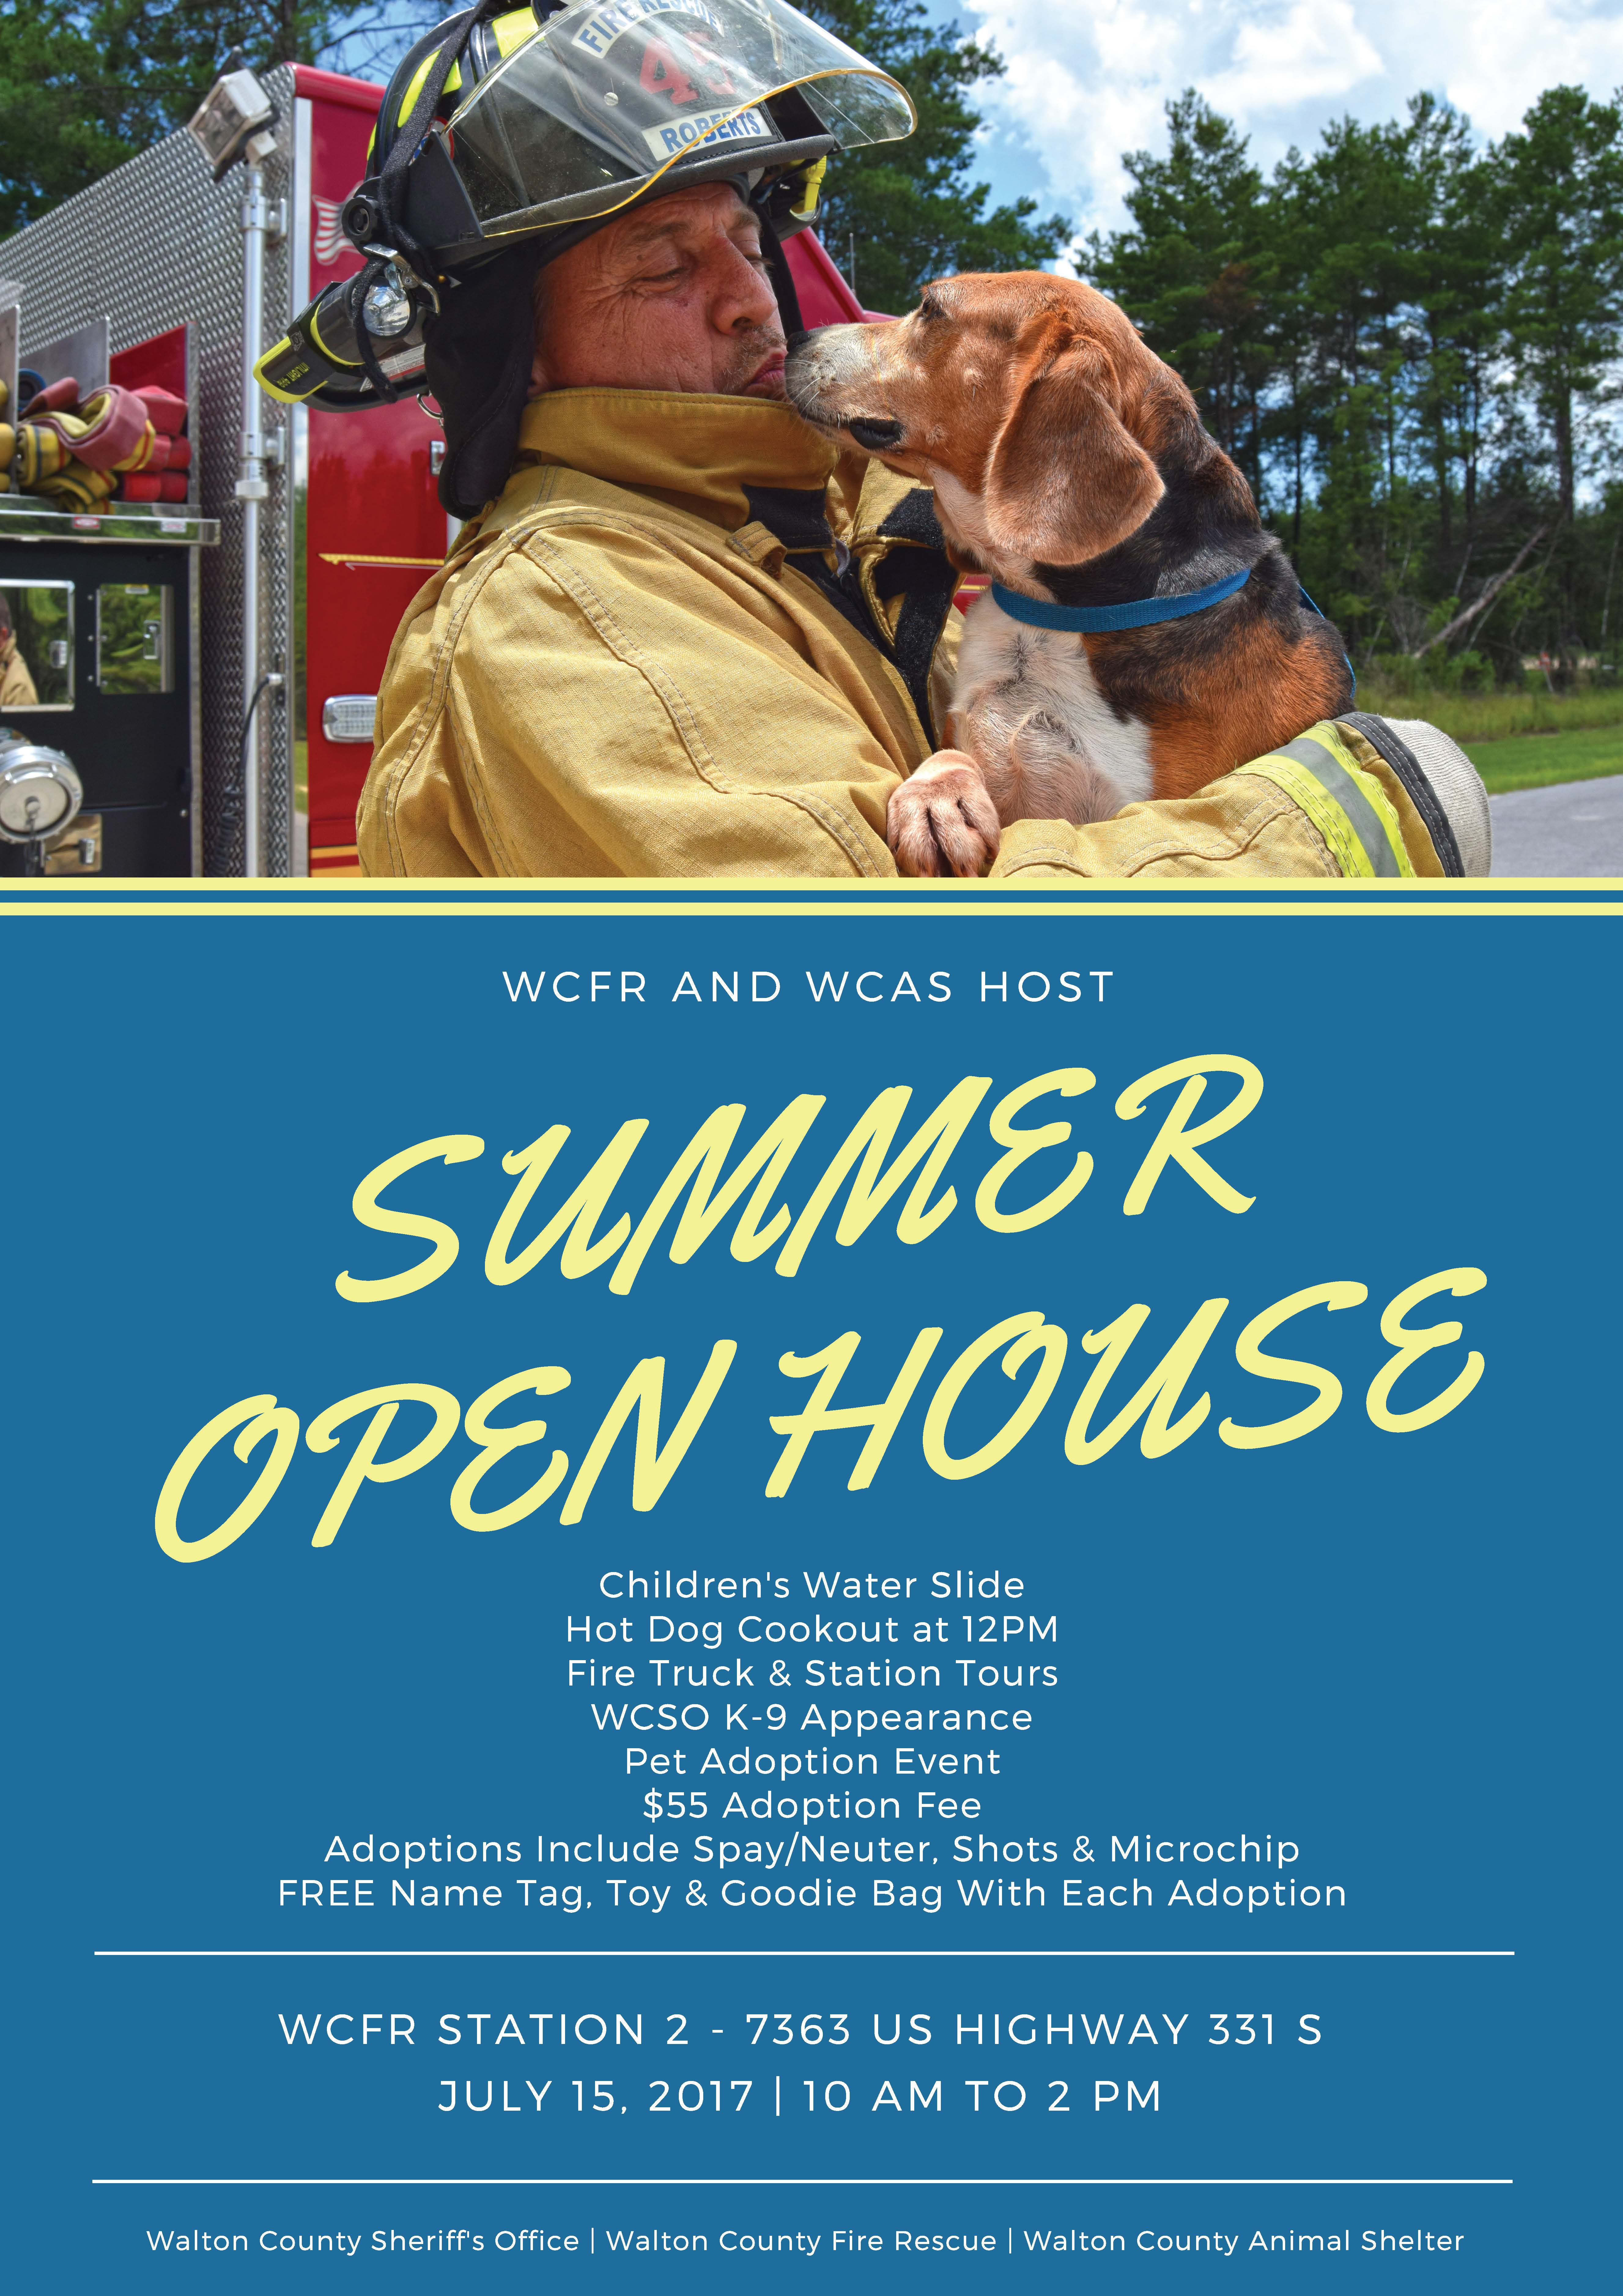 WALTON COUNTY FIRE RESCUE AND WALTON COUNTY ANIMAL SHELTER HOST